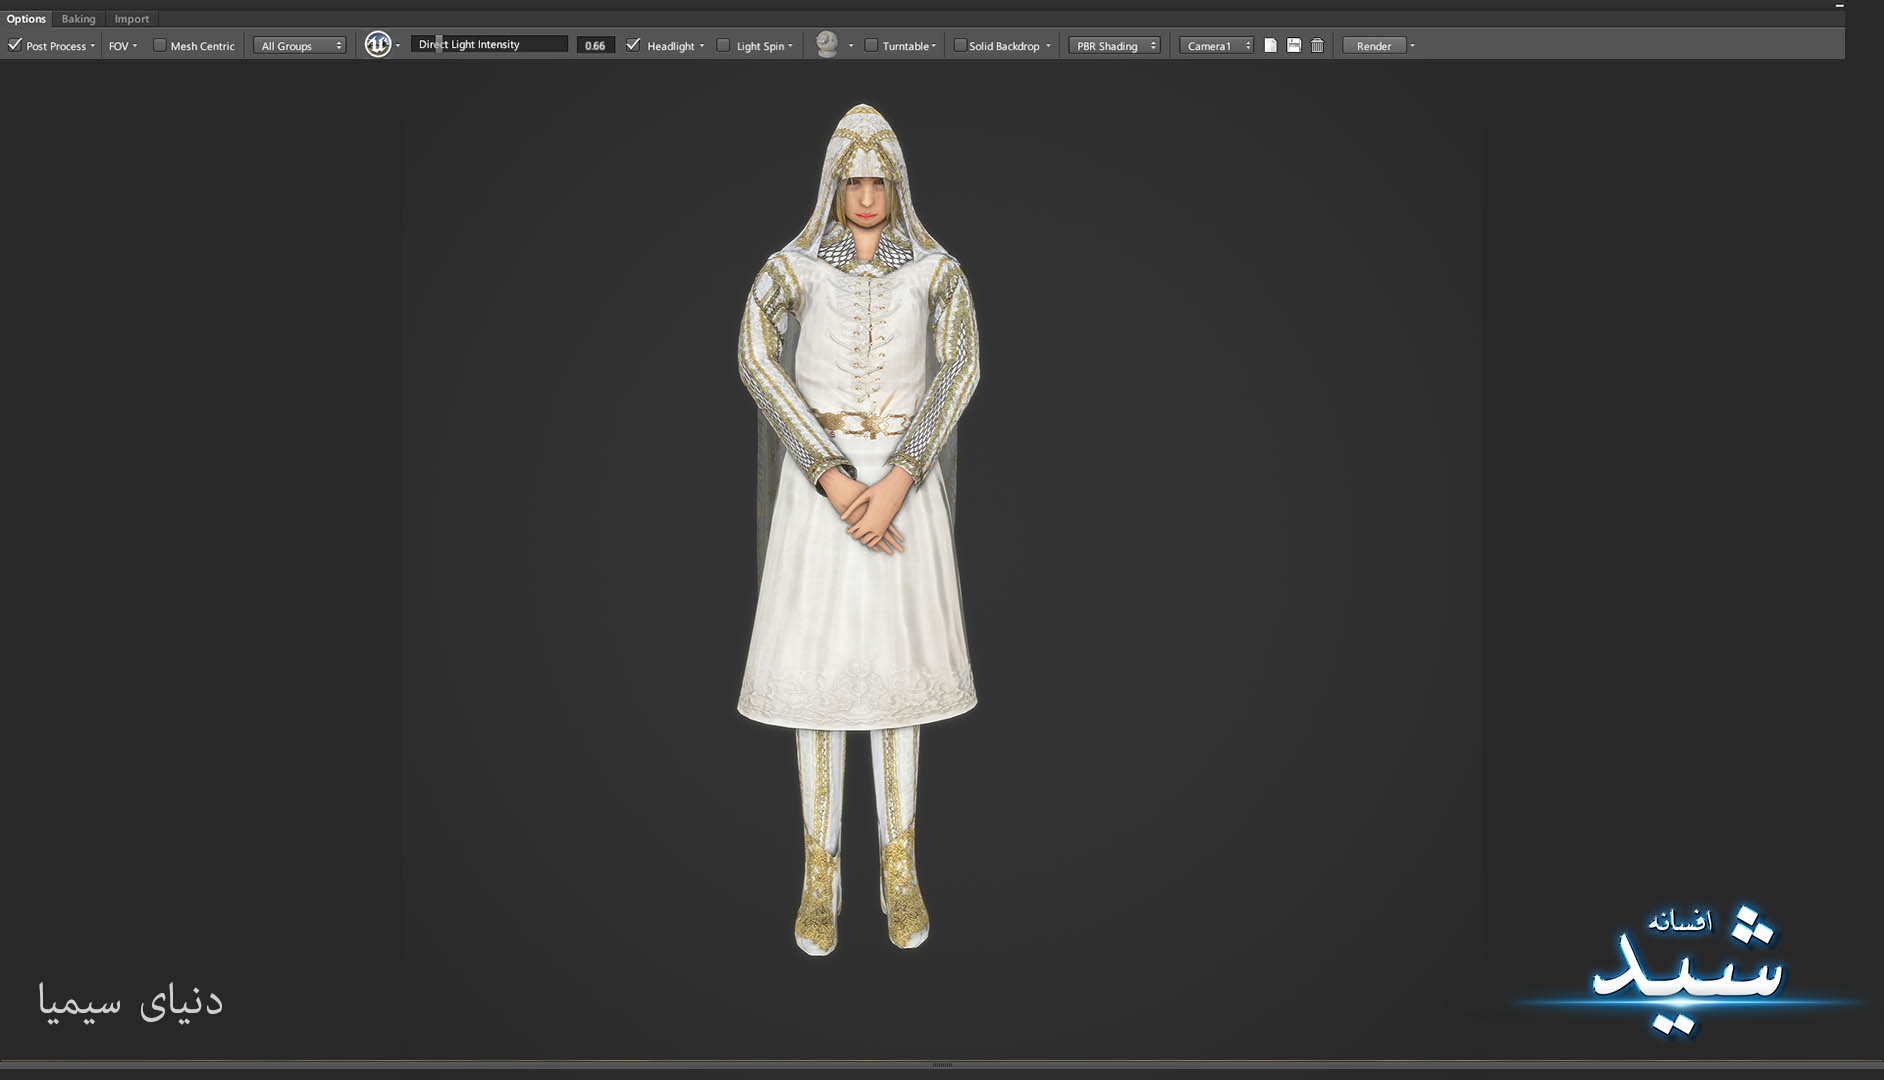 Legend of the light_Healer Character Texturing_Hadi Beheshti CG Artist Game Designer-2